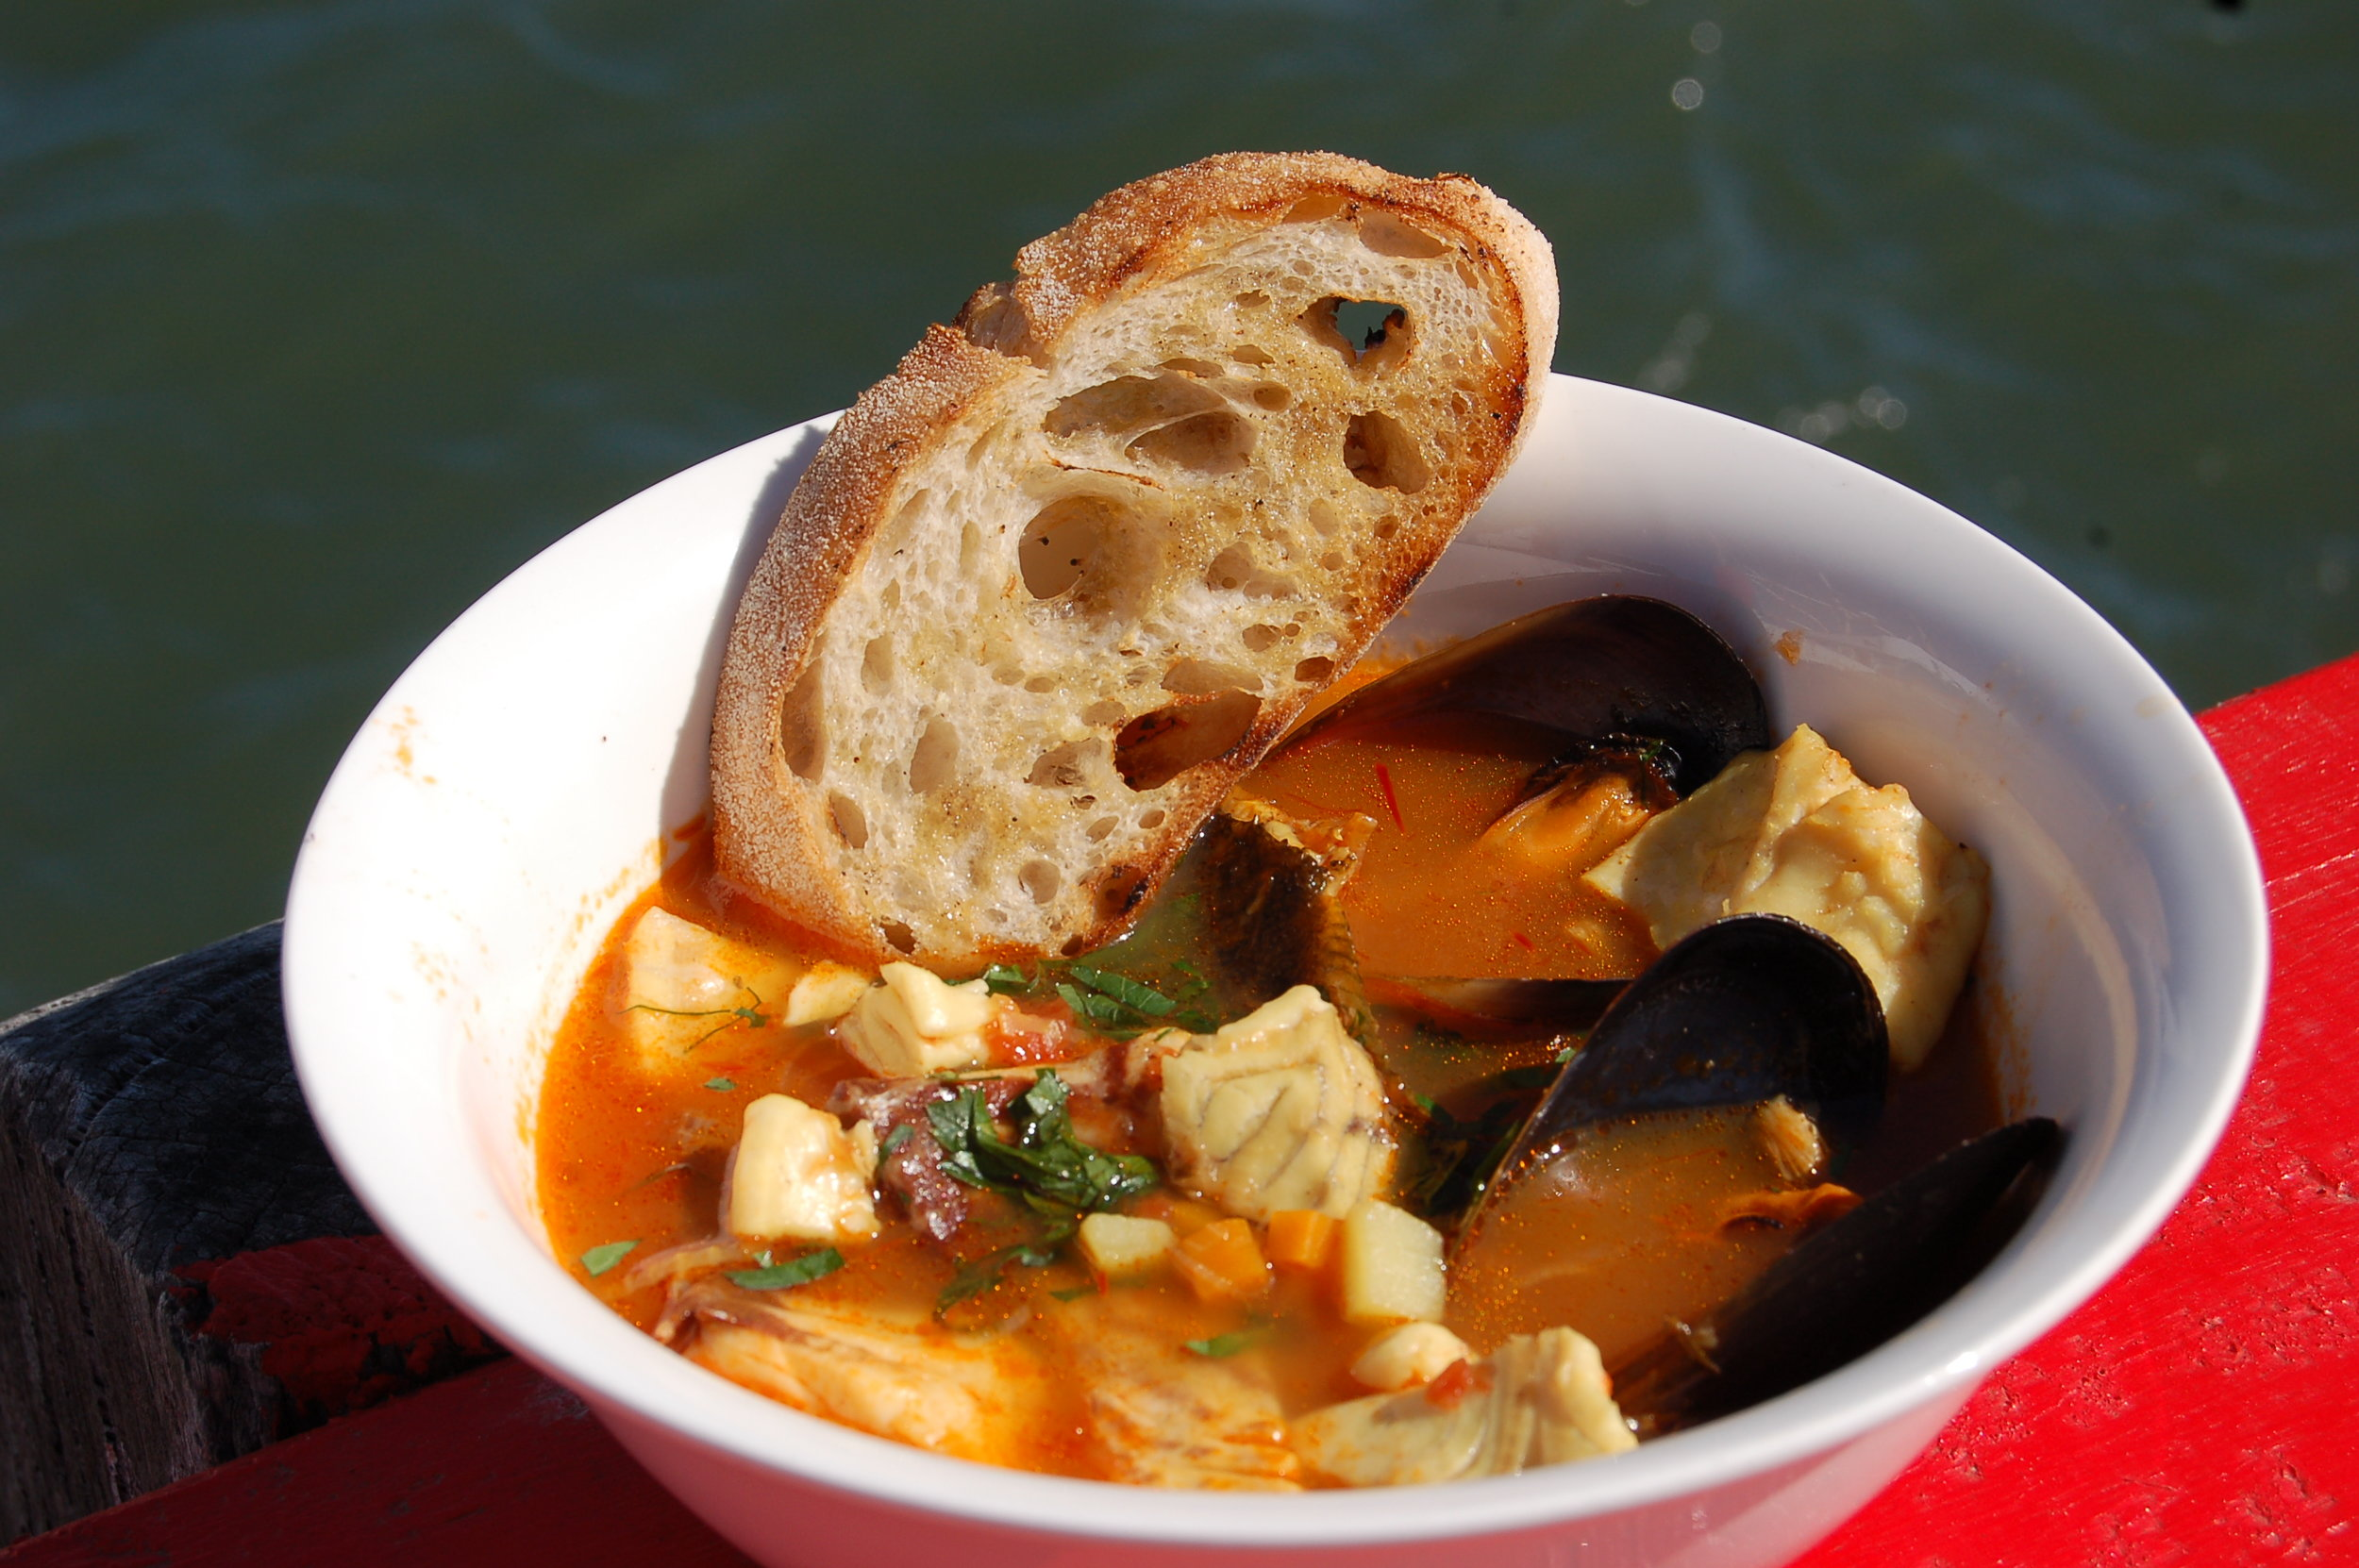 My version of the famous Bouillabaisse